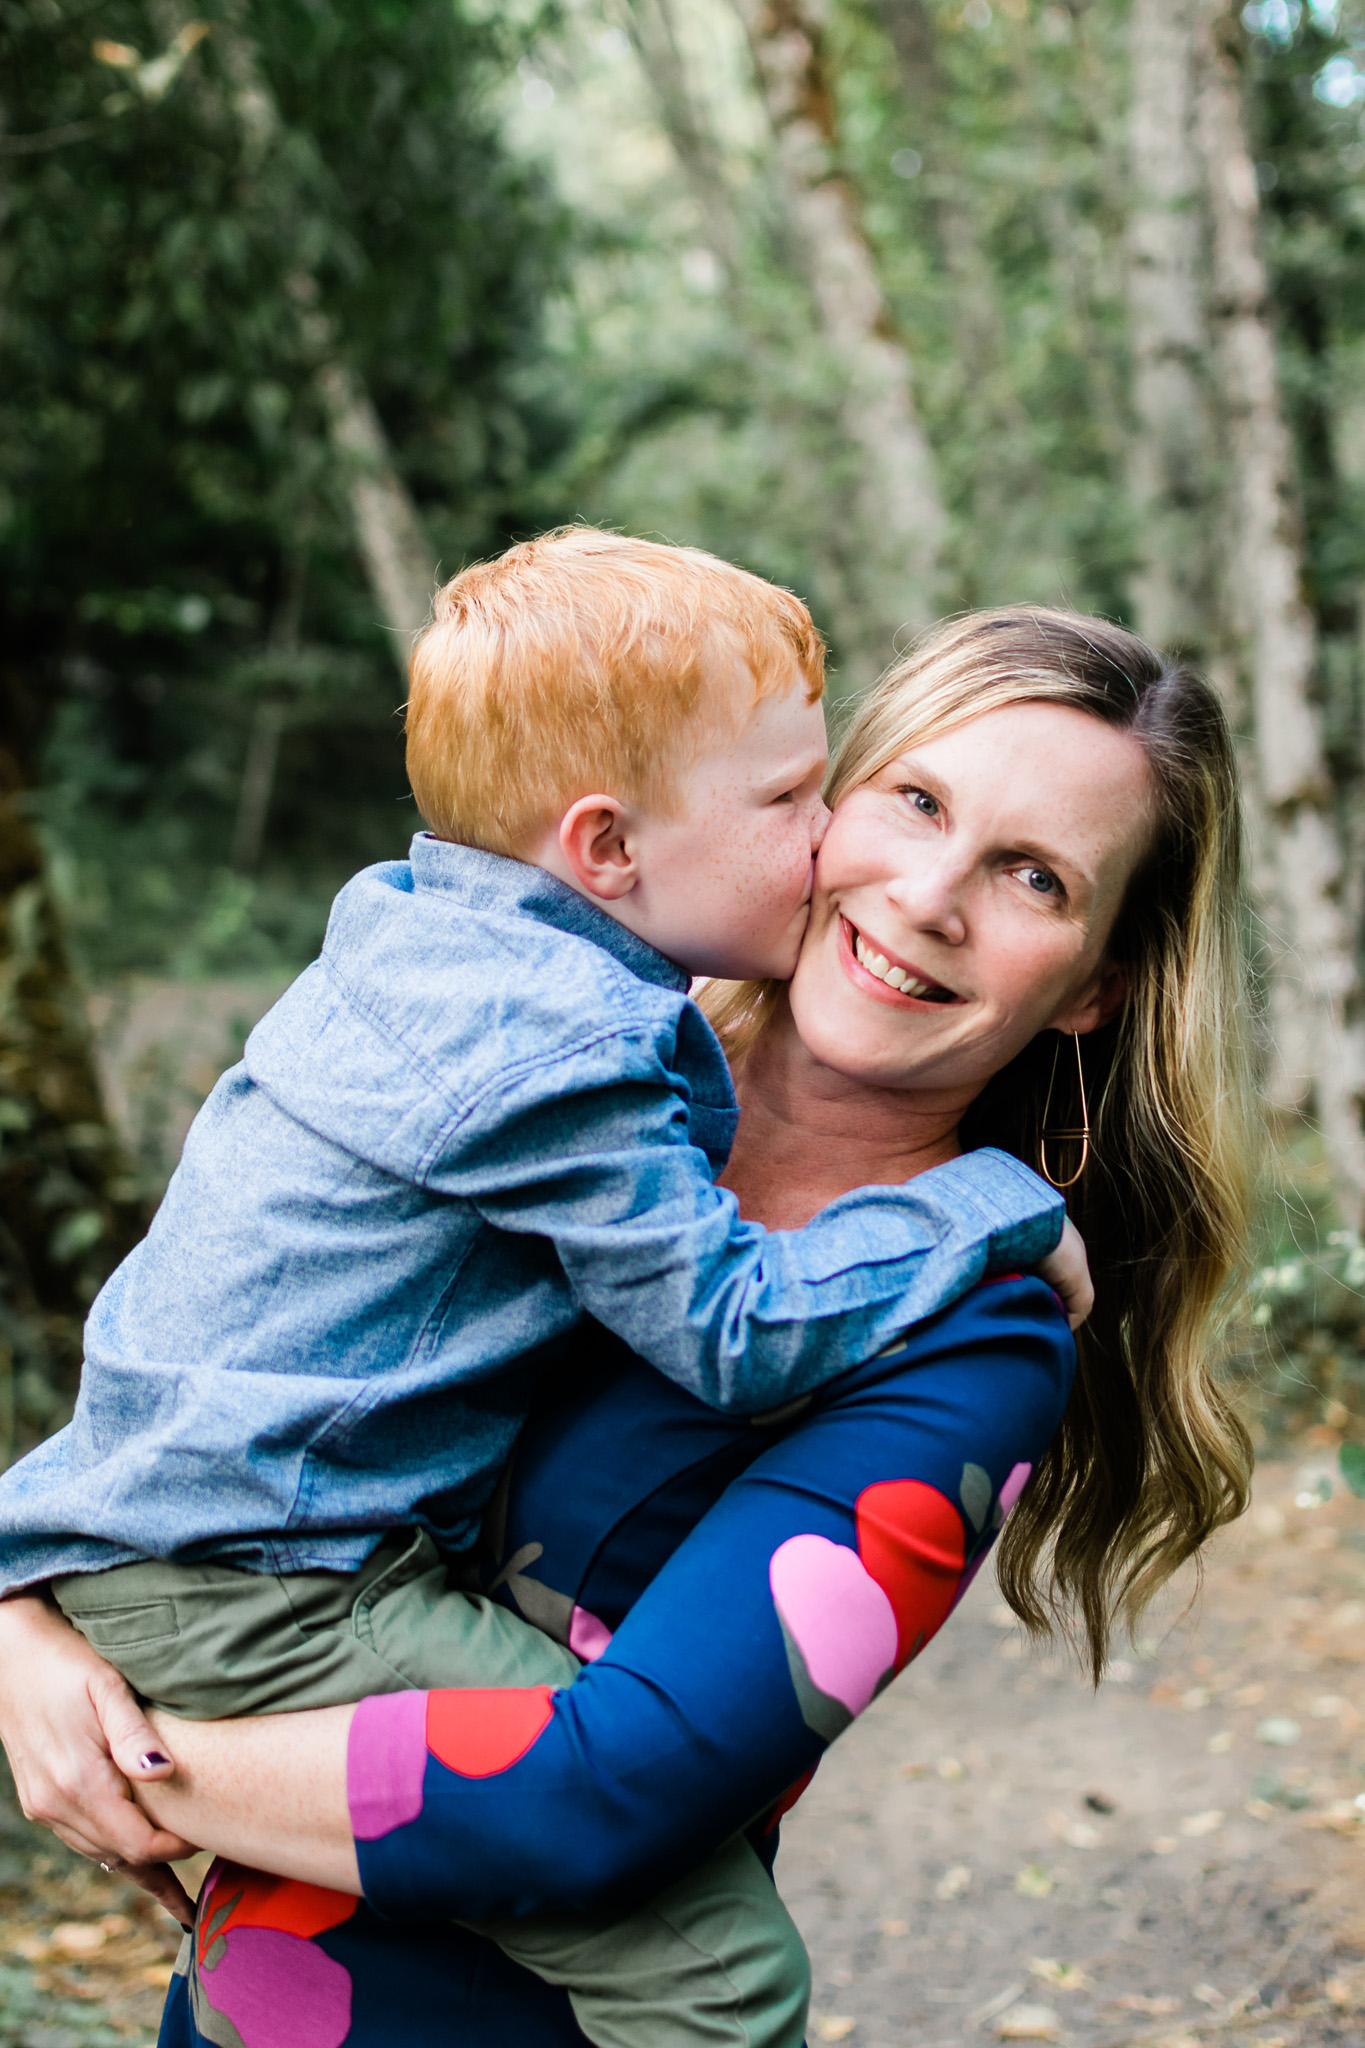 family photography portland oregon by Elizabeth Hite in Forest Heights